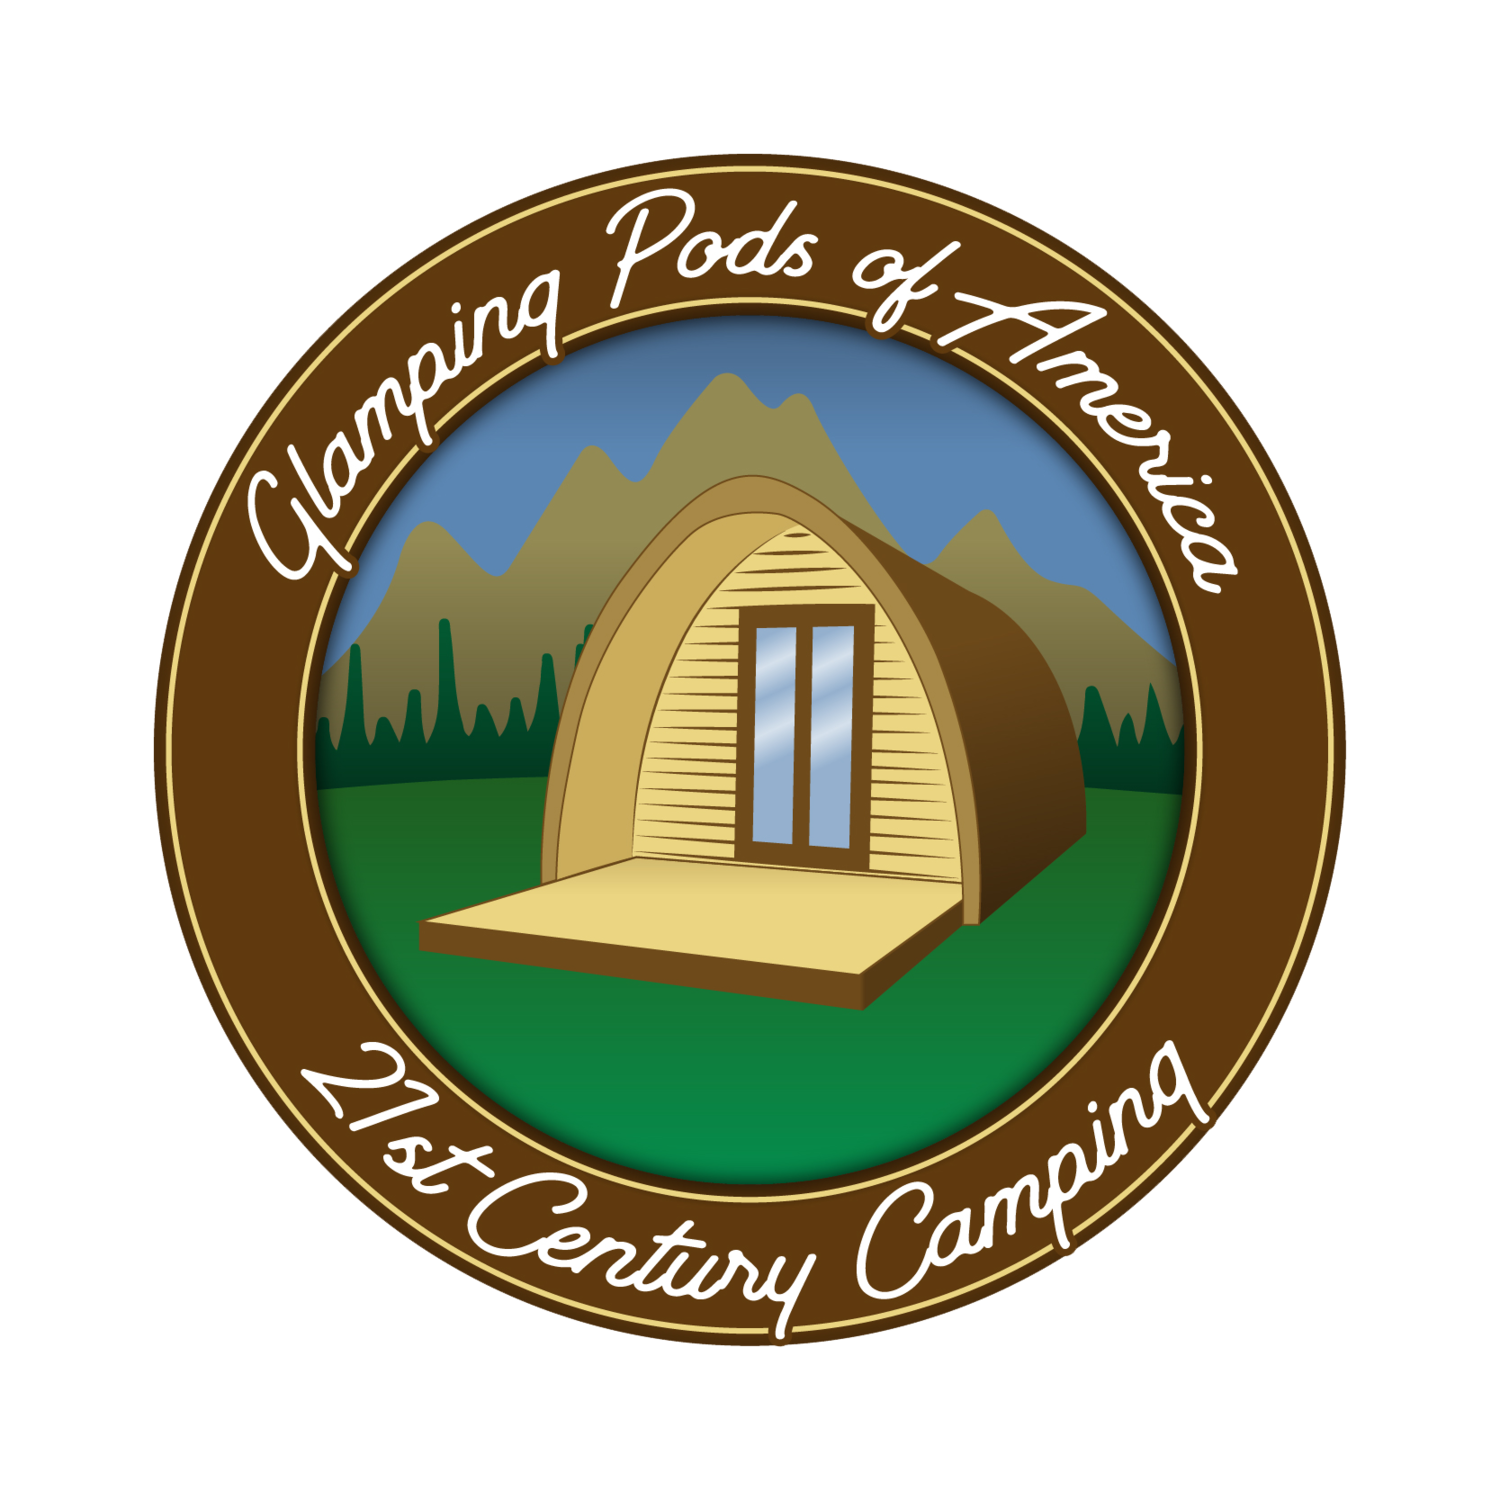 Glamping Pods of America